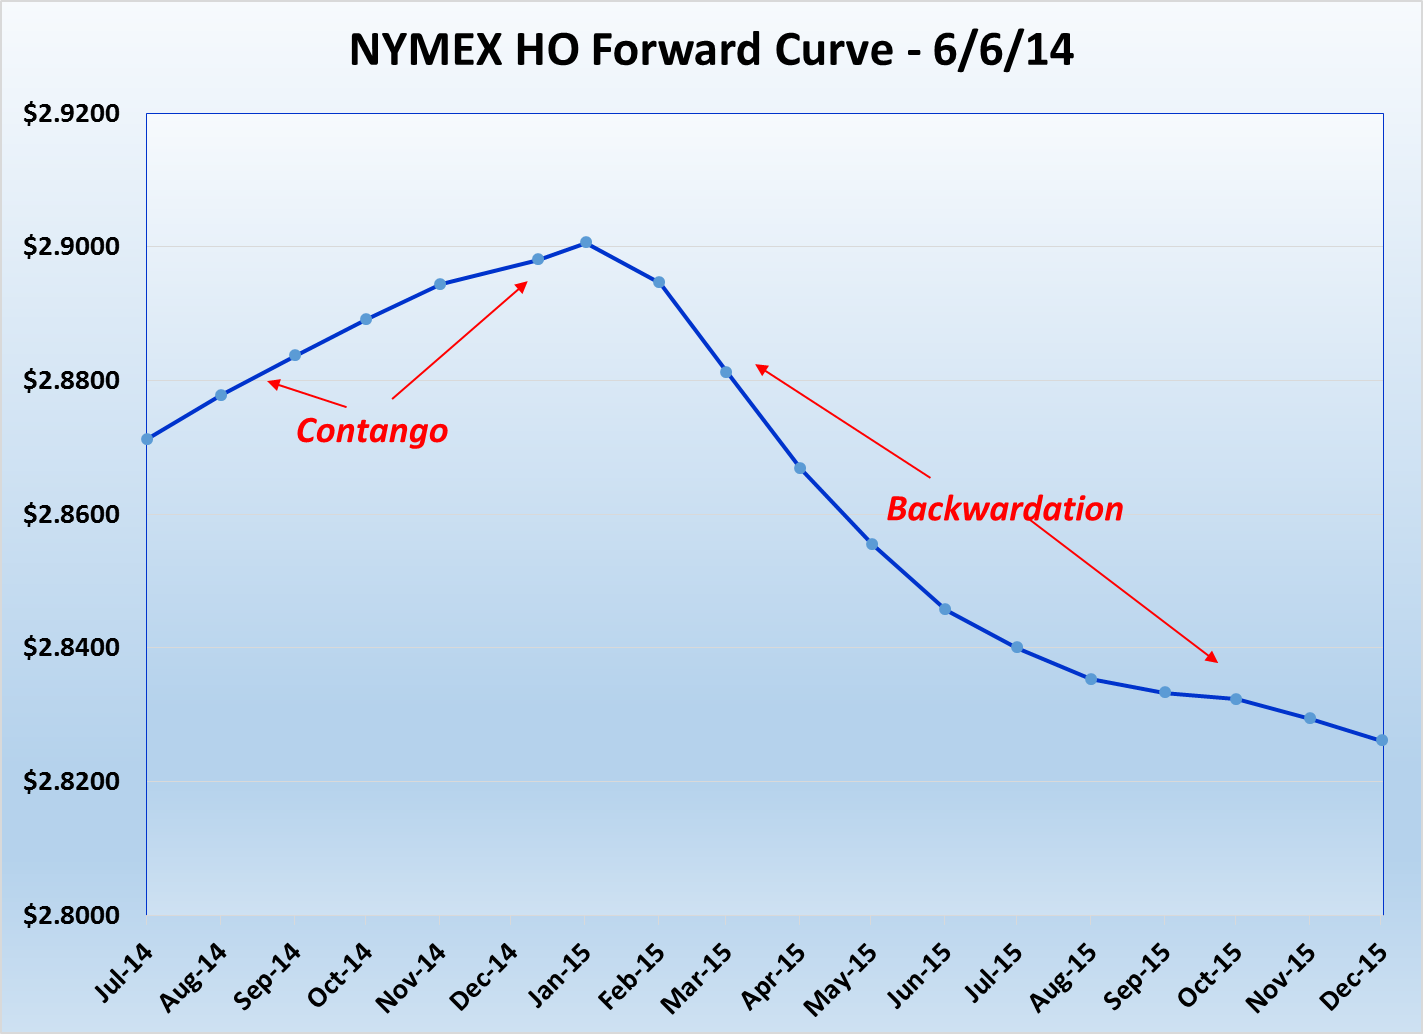 Source: NYMEX ULSD Data on 6/6/2014